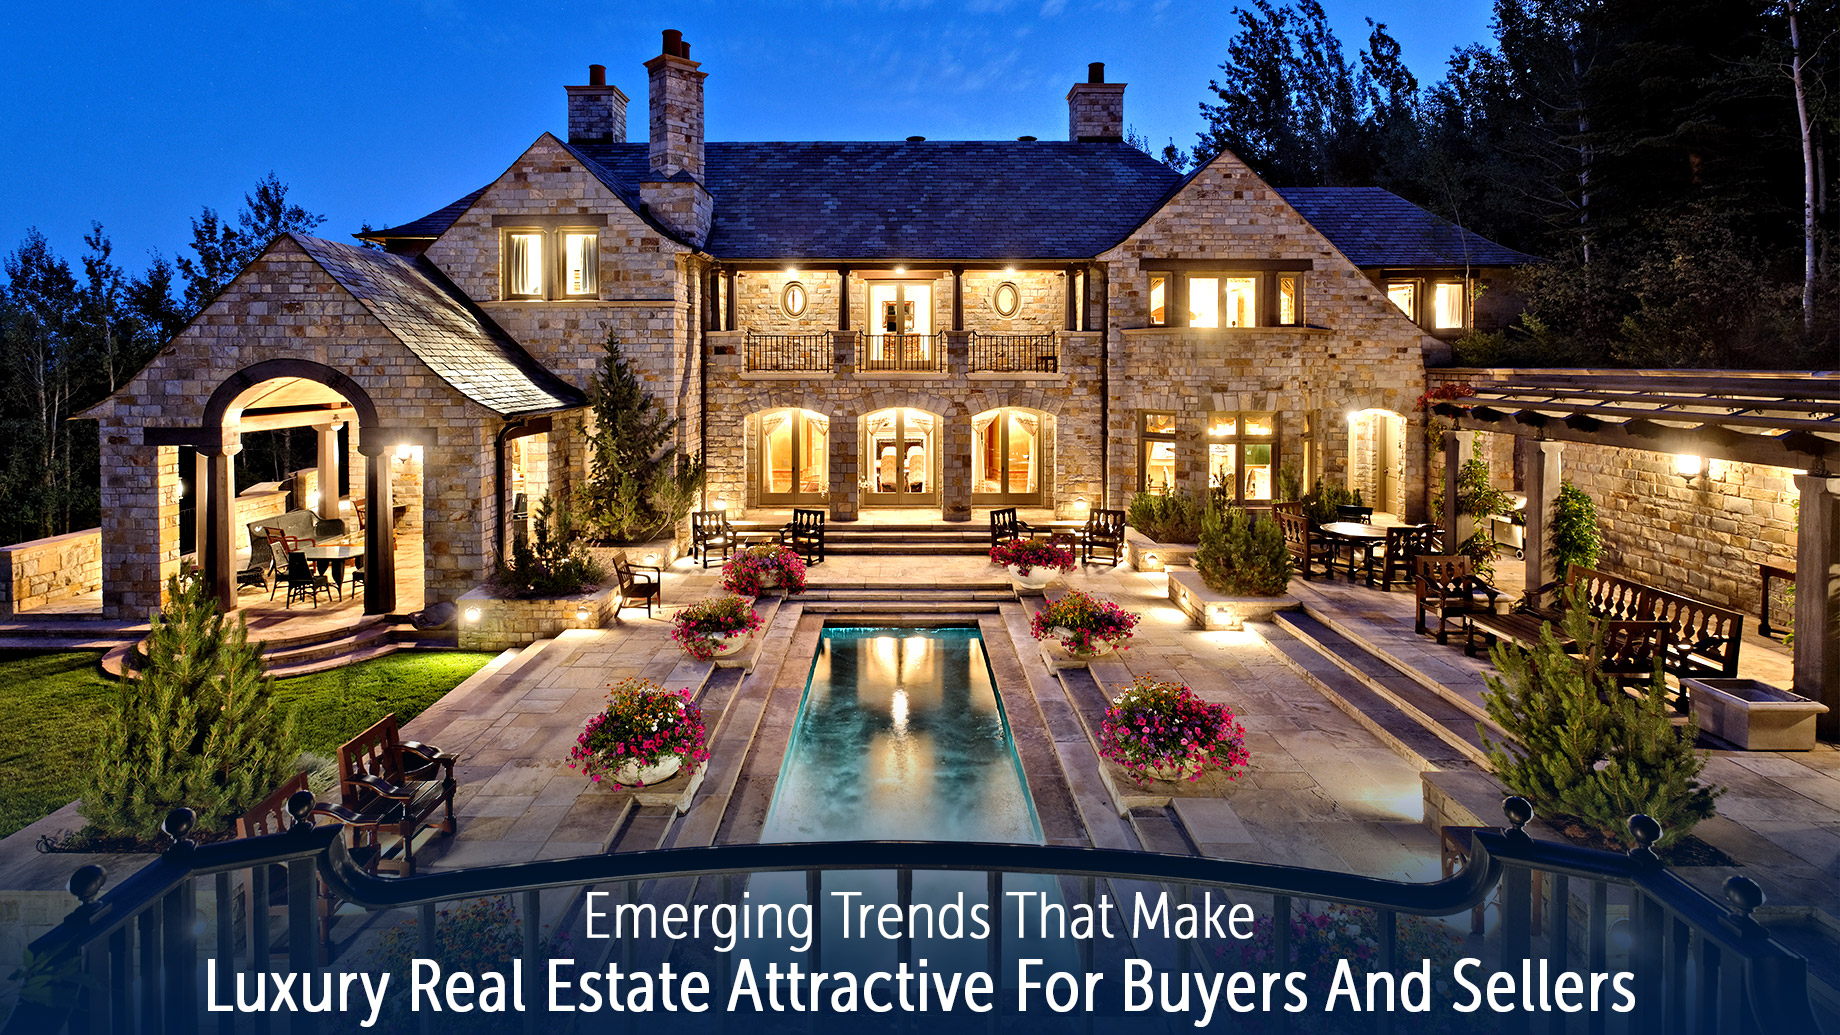 Emerging Trends That Make Luxury Real Estate Attractive For Buyers And Sellers